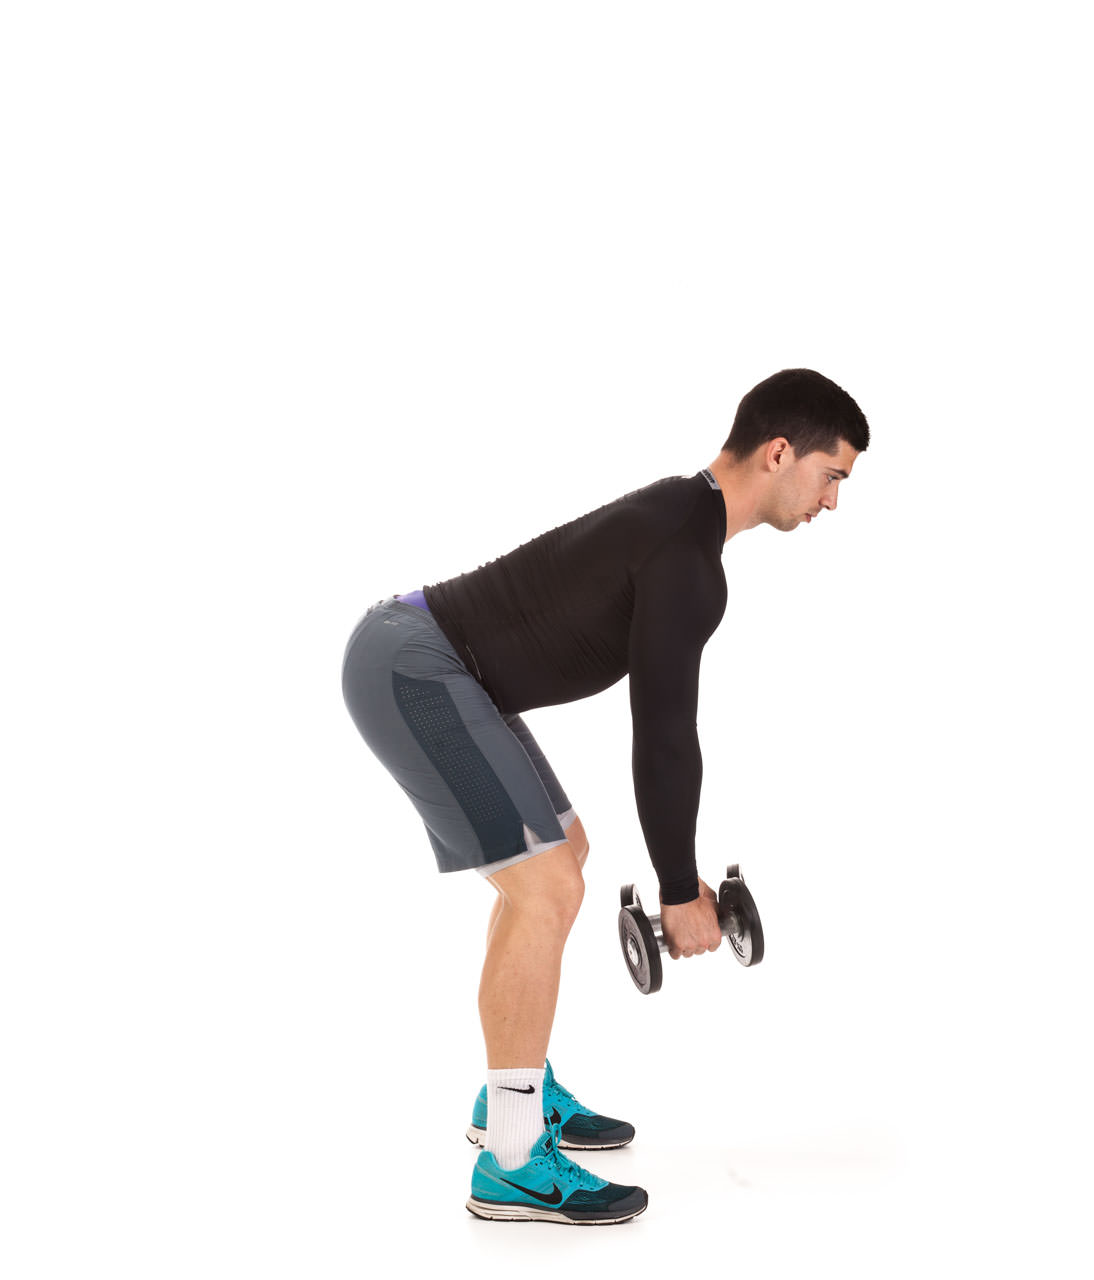 Bent Over Dumbbell Lateral Raise frame #4